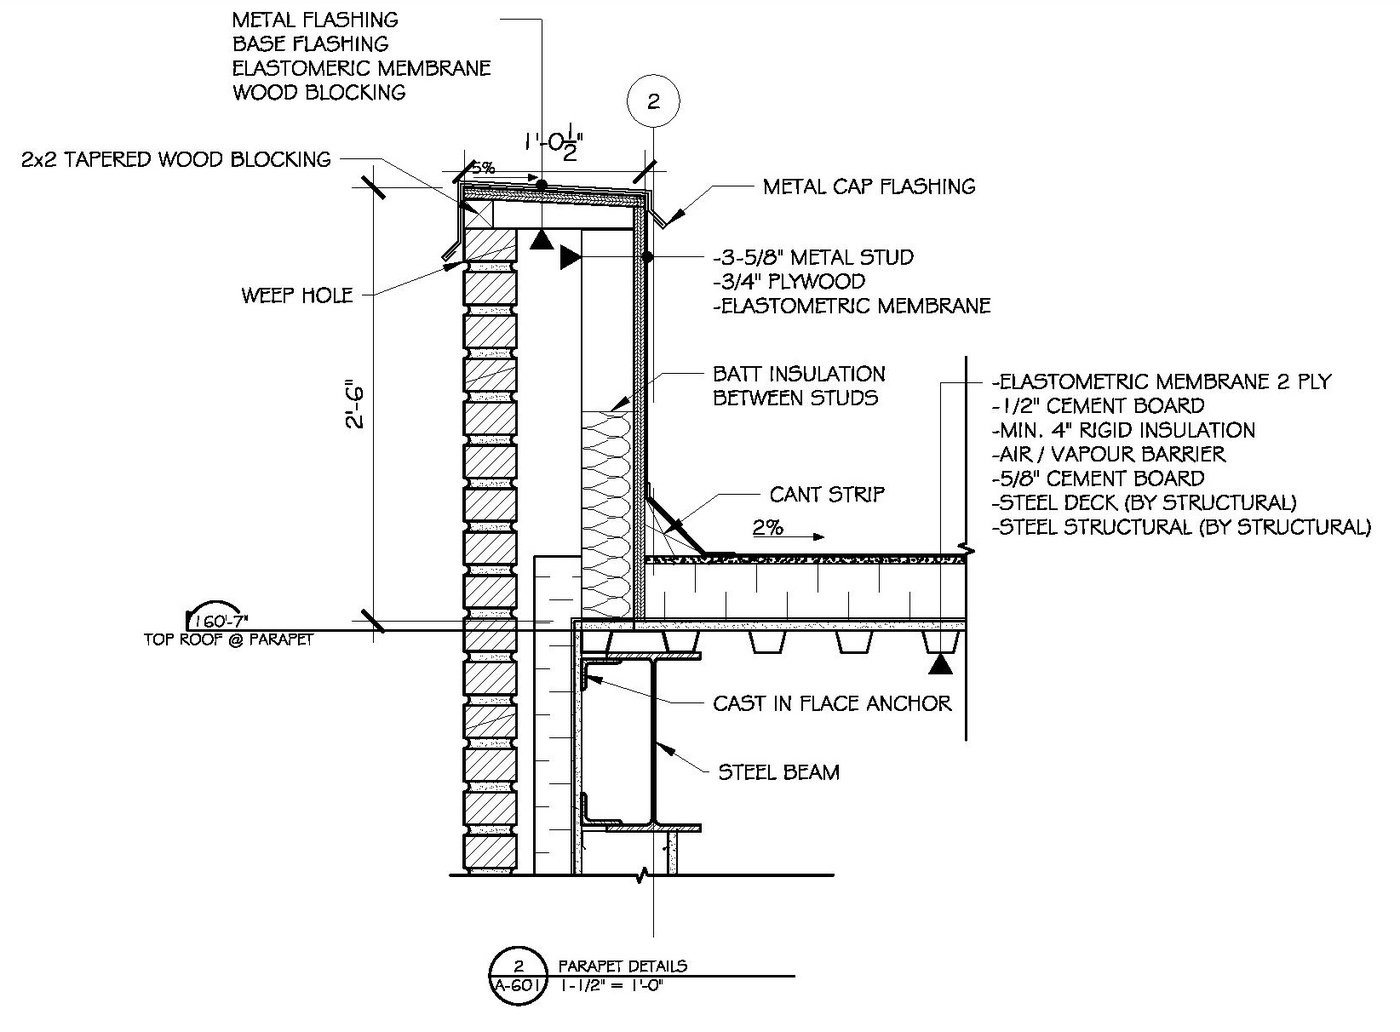 Commercial Building Plans by Raymond Alberga at Coroflot.com